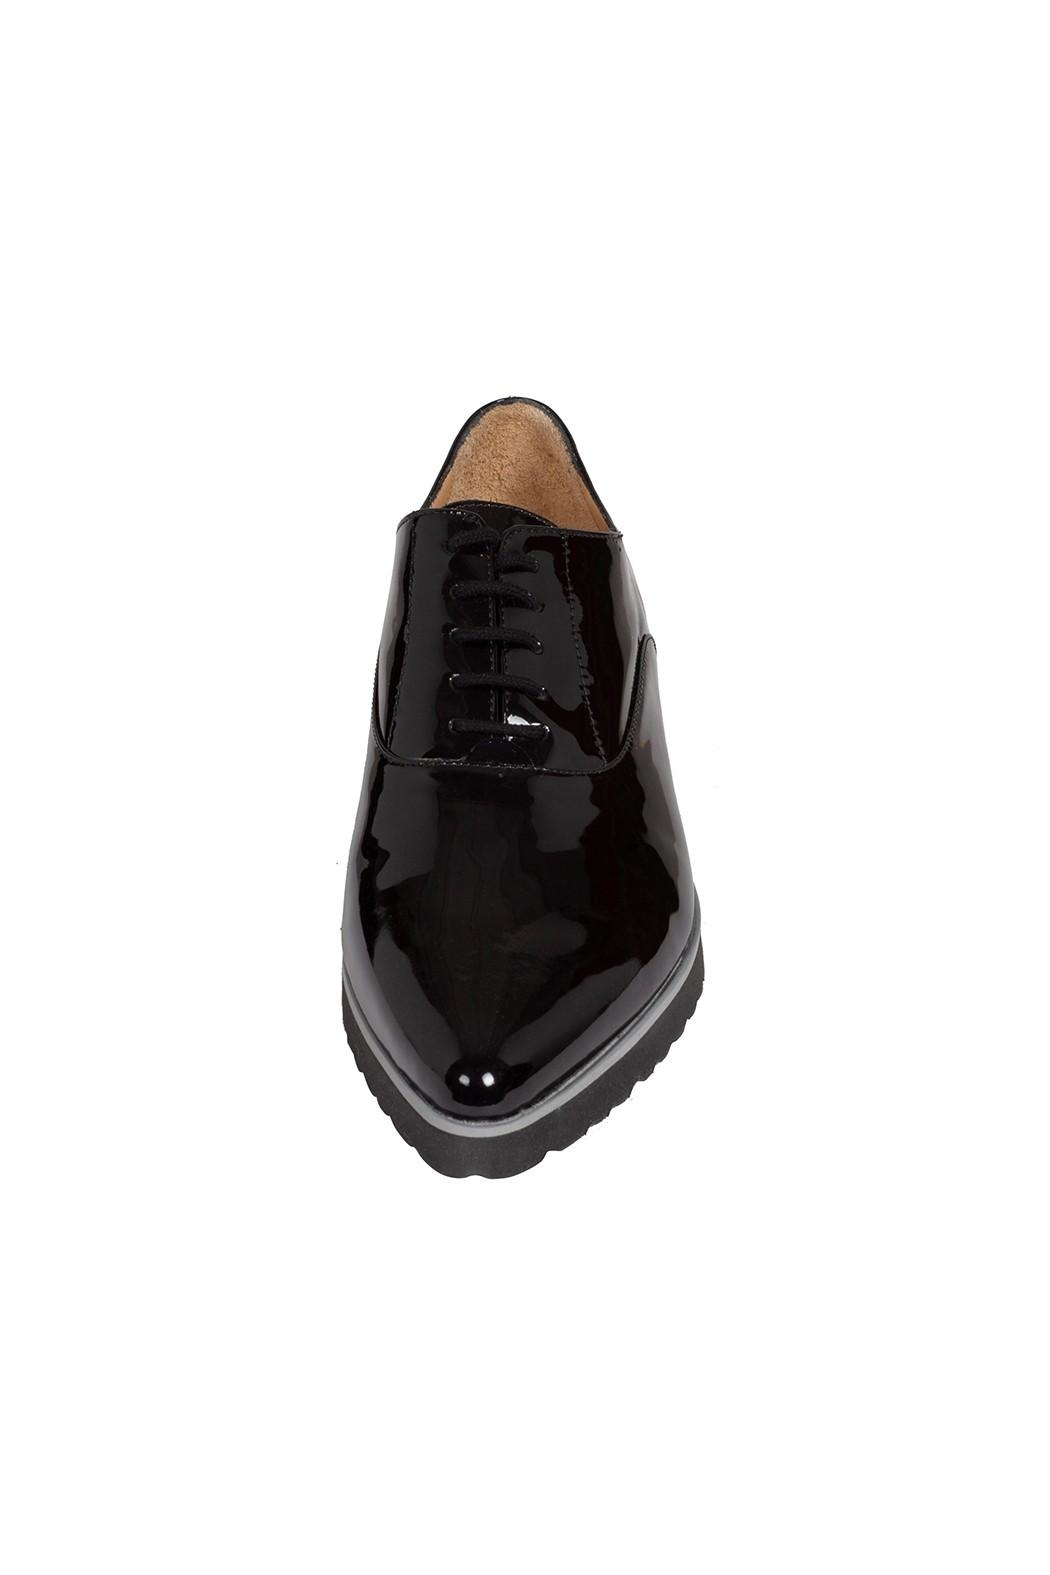 Pascucci Patent-Leather, Black, Brogues - Side Cropped Image